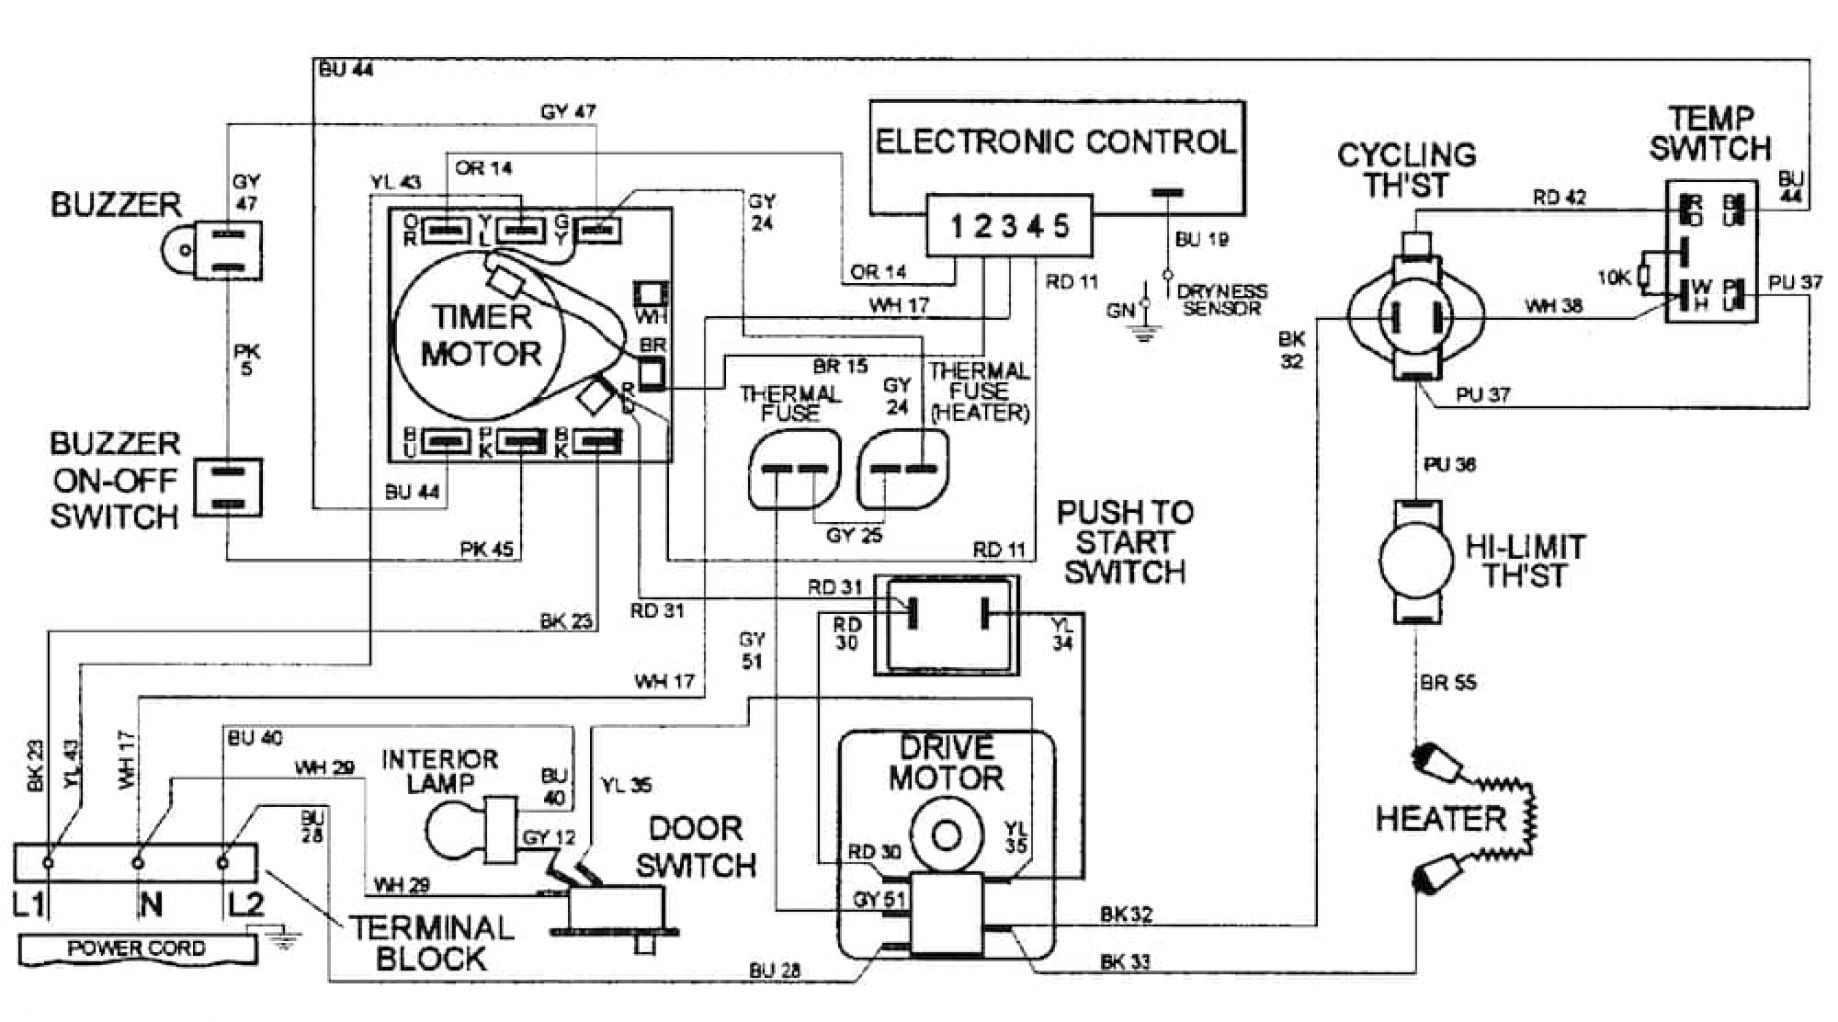 Wiring Diagram For Whirlpool Dryer | Whirlpool Wiring Schematic |  | Wiring Diagram